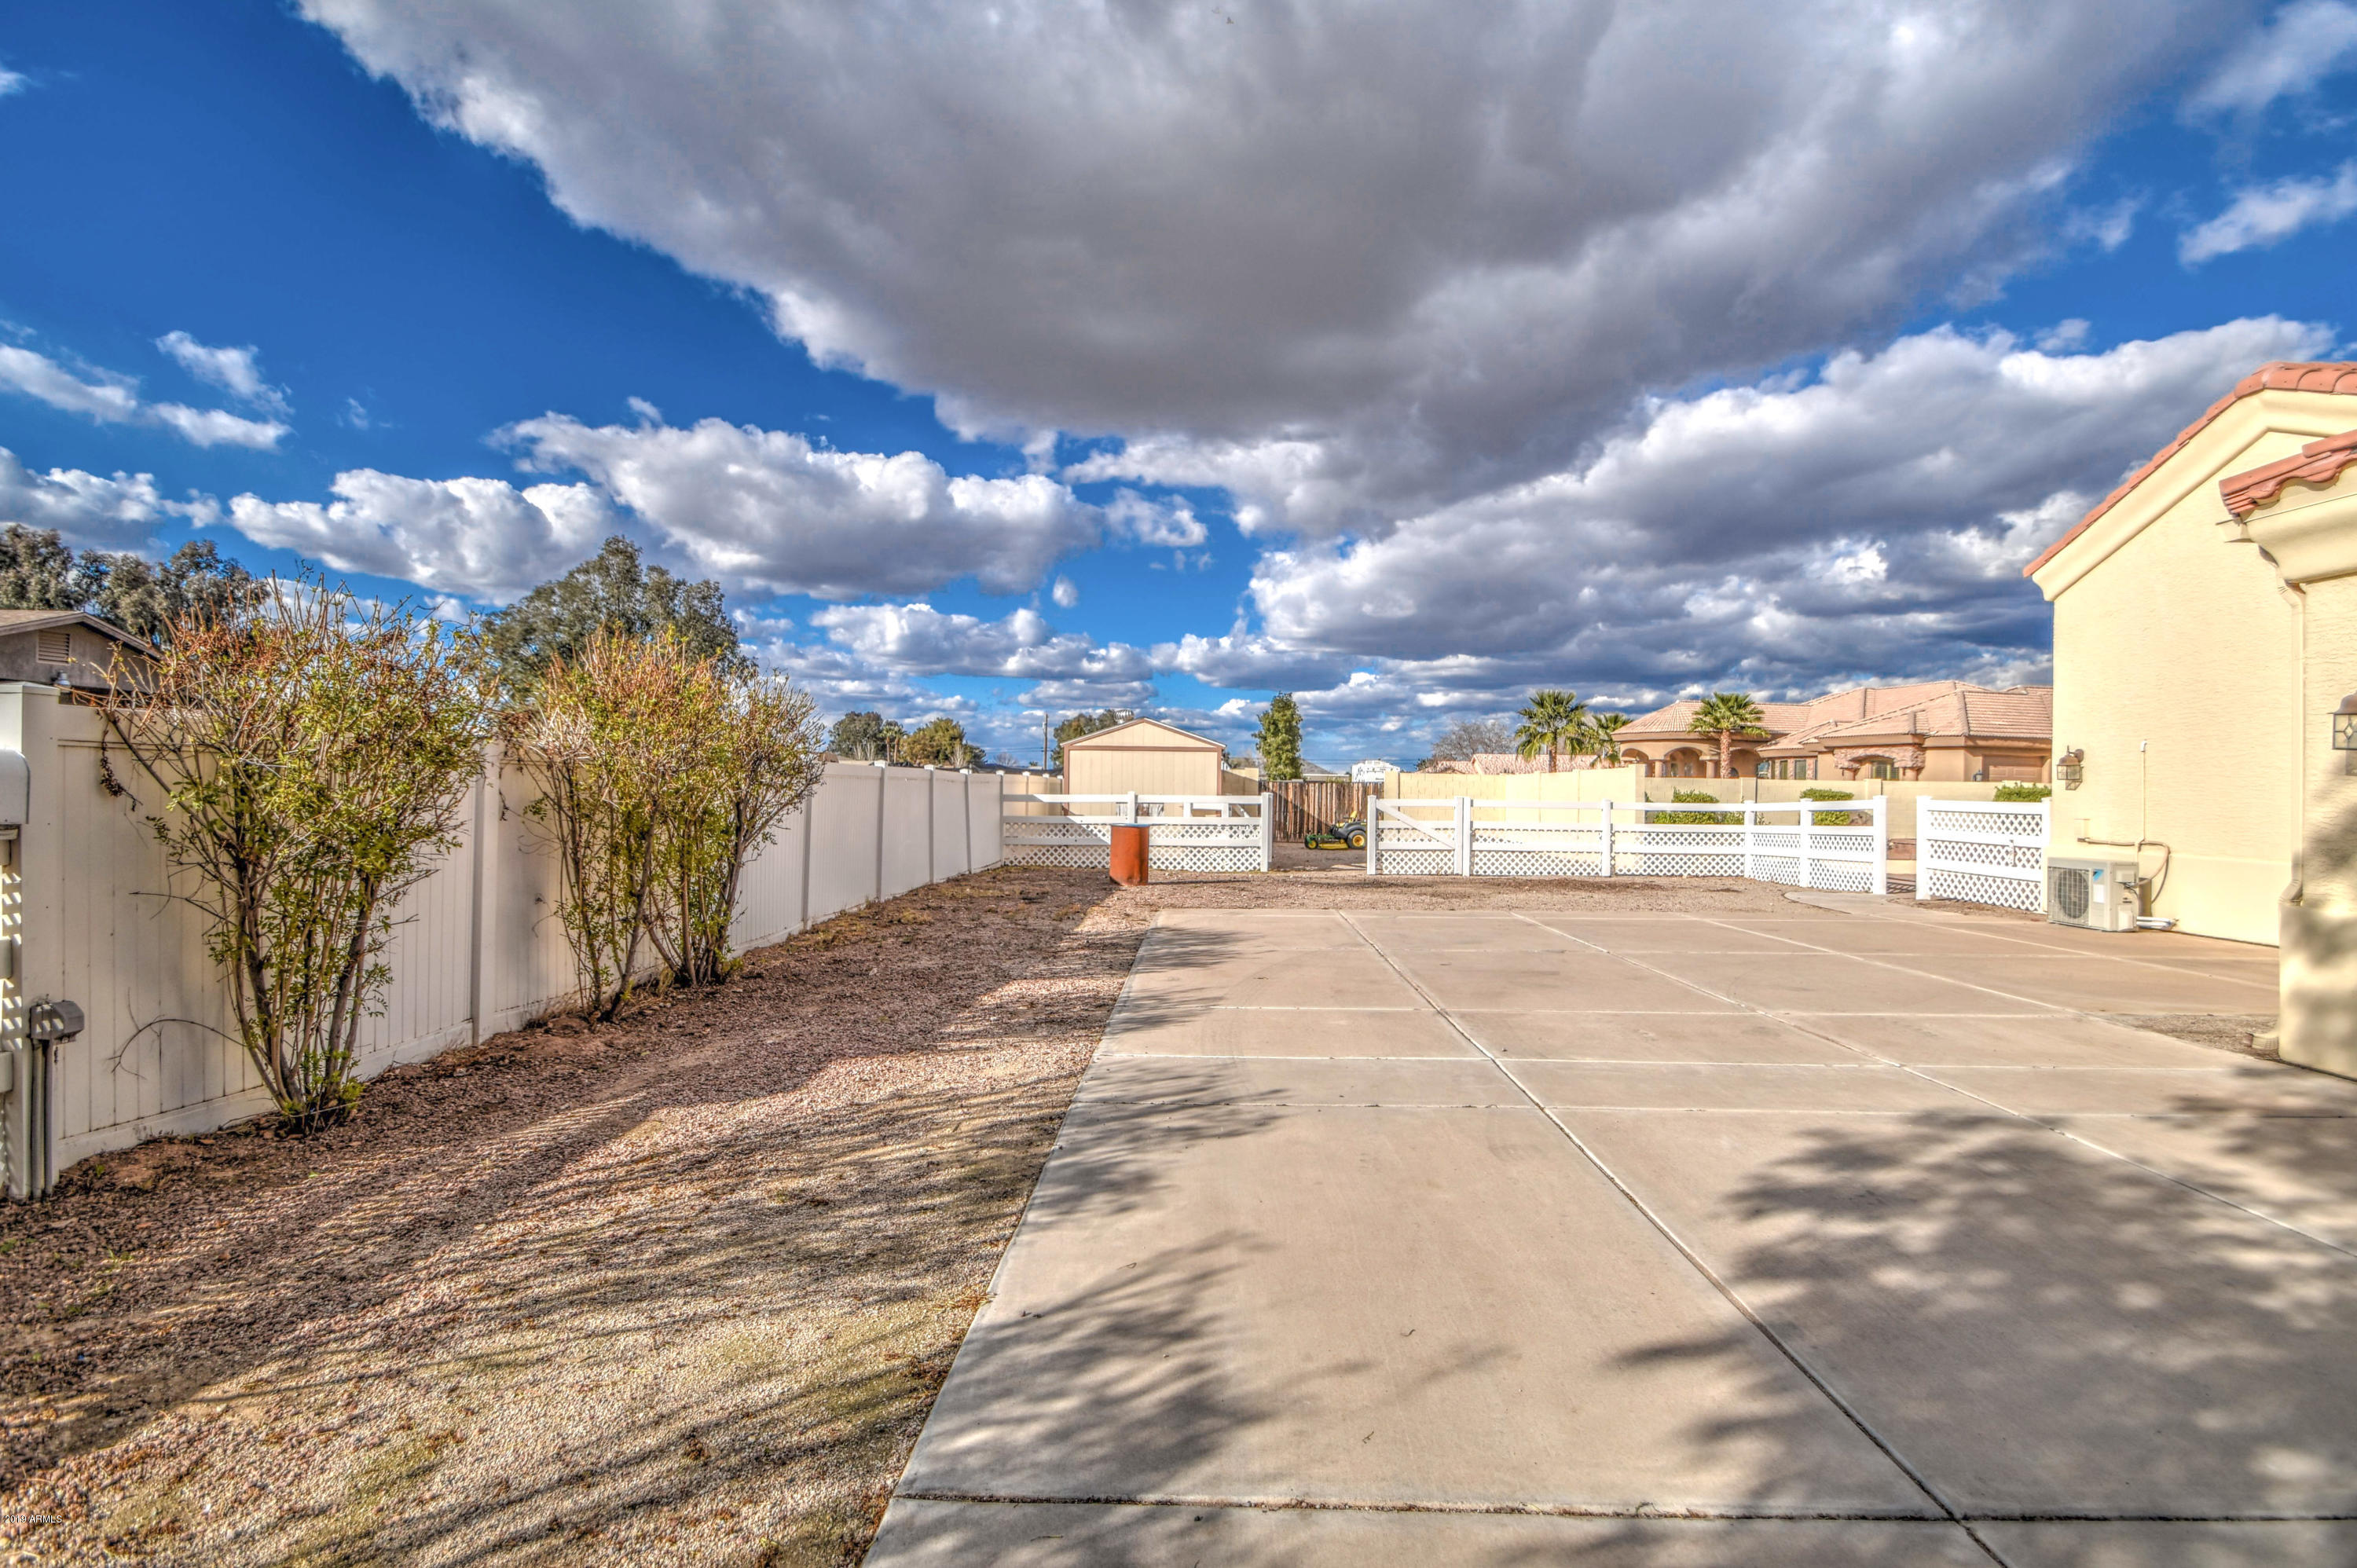 MLS 5850822 14030 E OCOTILLO Road, Chandler, AZ 85249 Horse Property